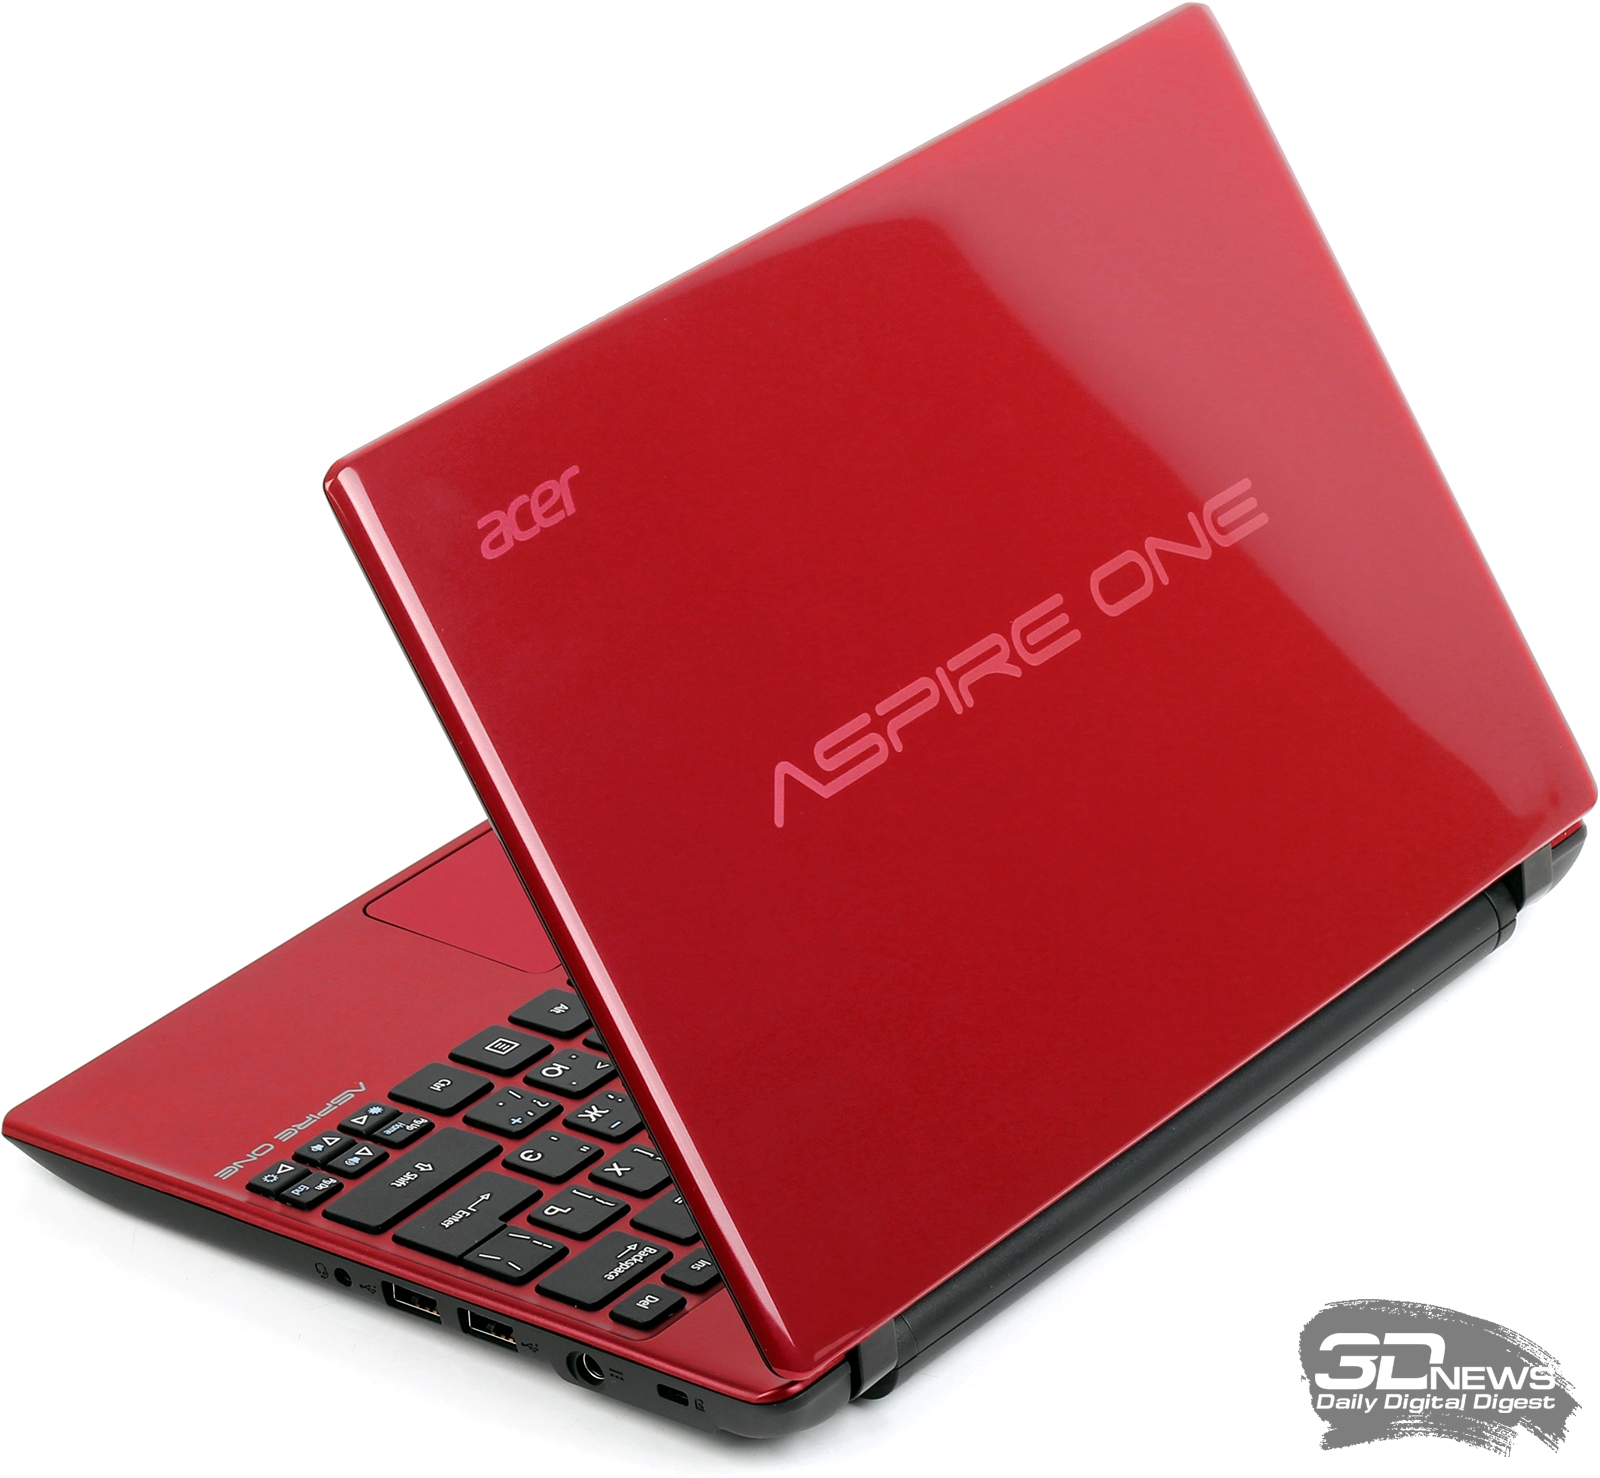 ACER AO756 DRIVER FOR WINDOWS 7